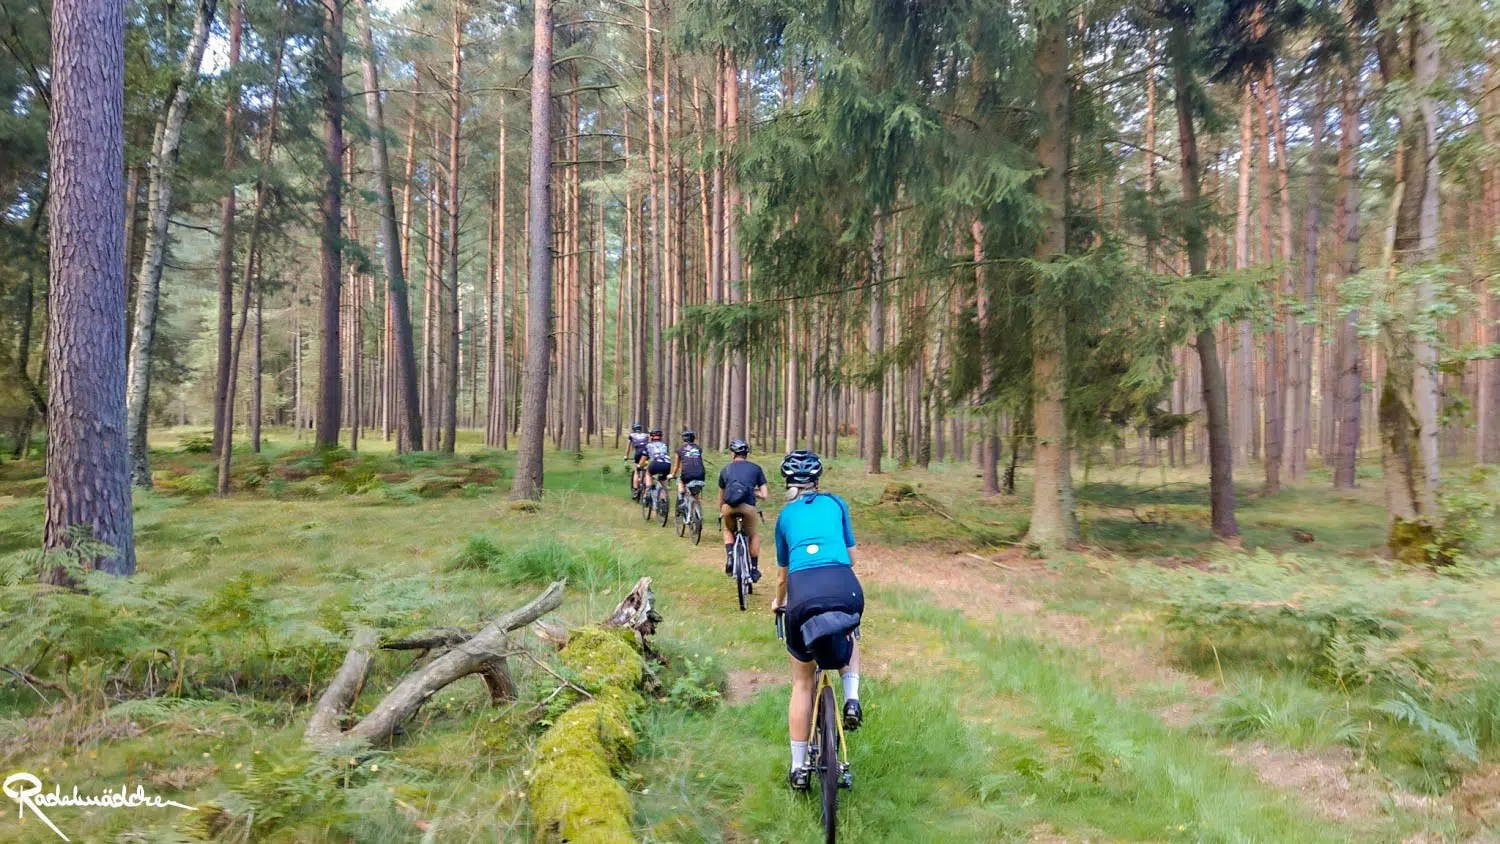 cyclists in a row in the woods